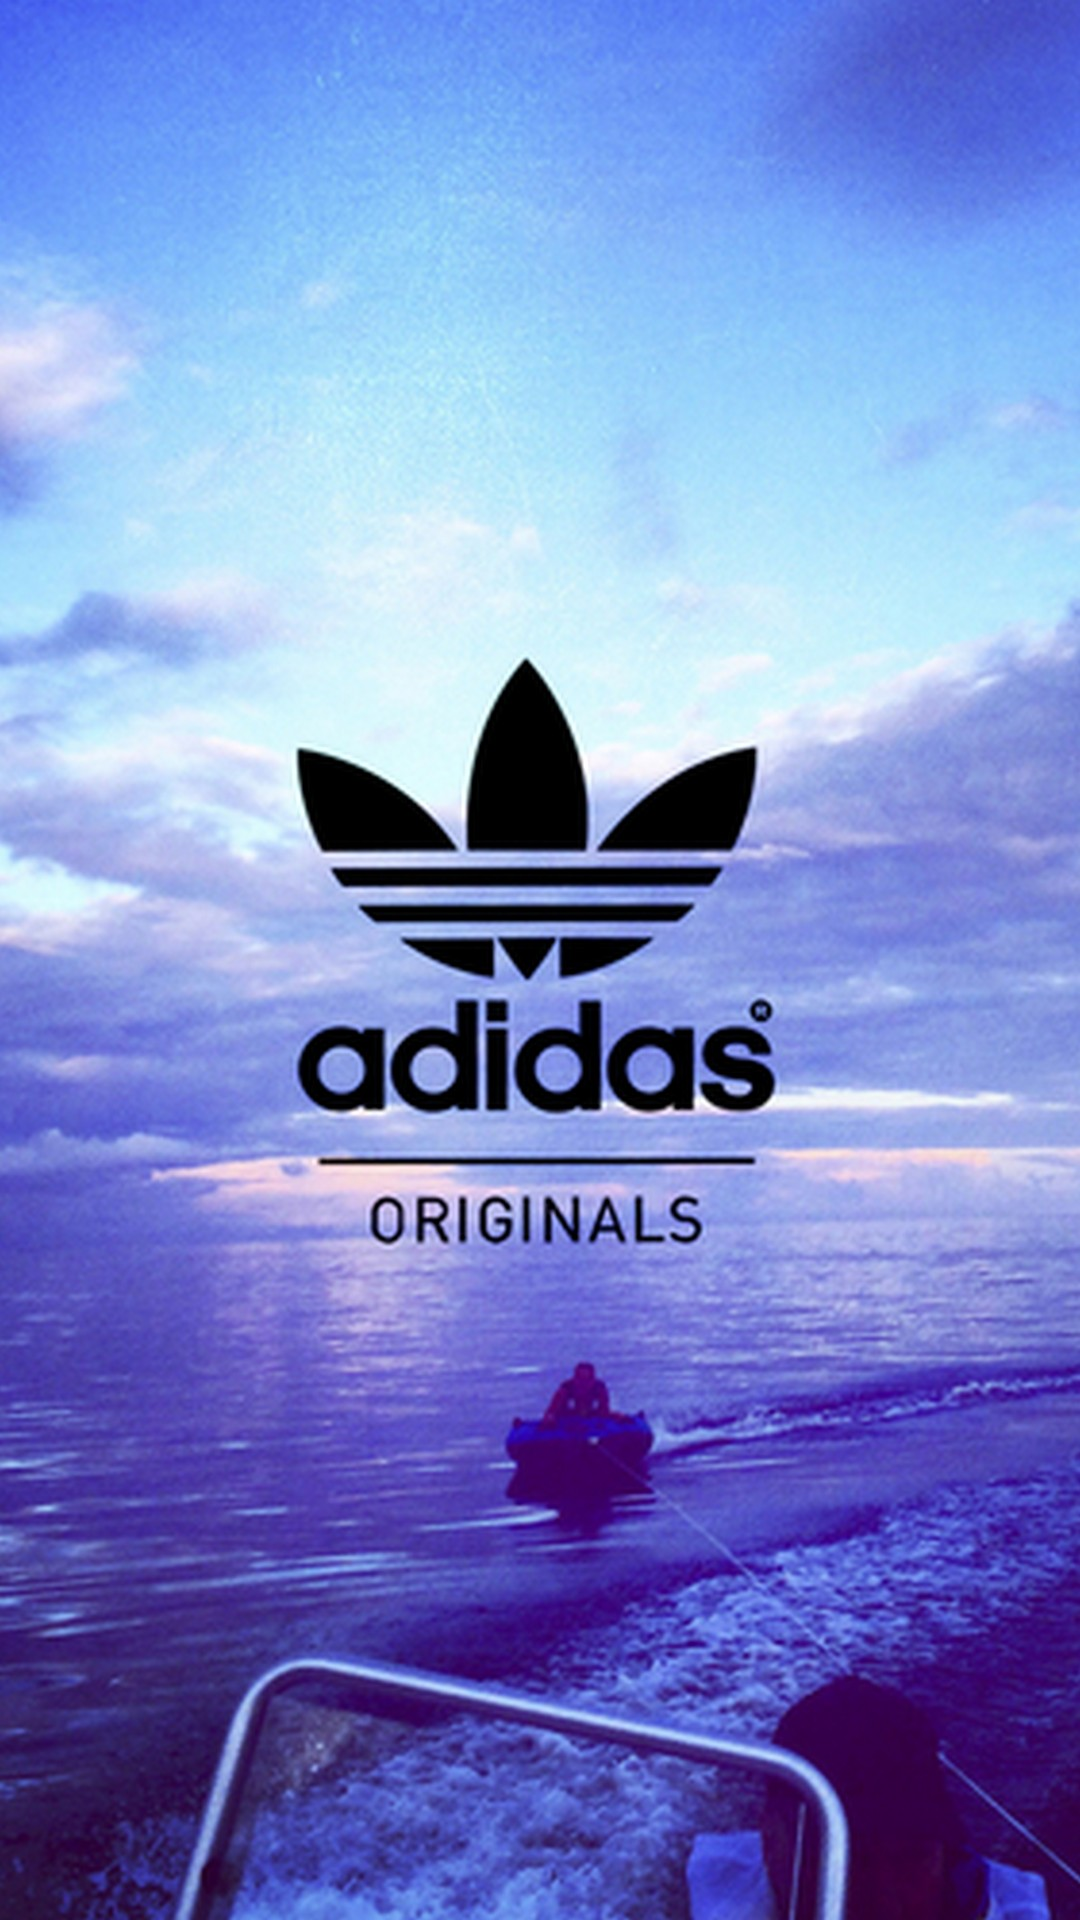 Adidas Iphone Wallpaper Posted By Samantha Peltier